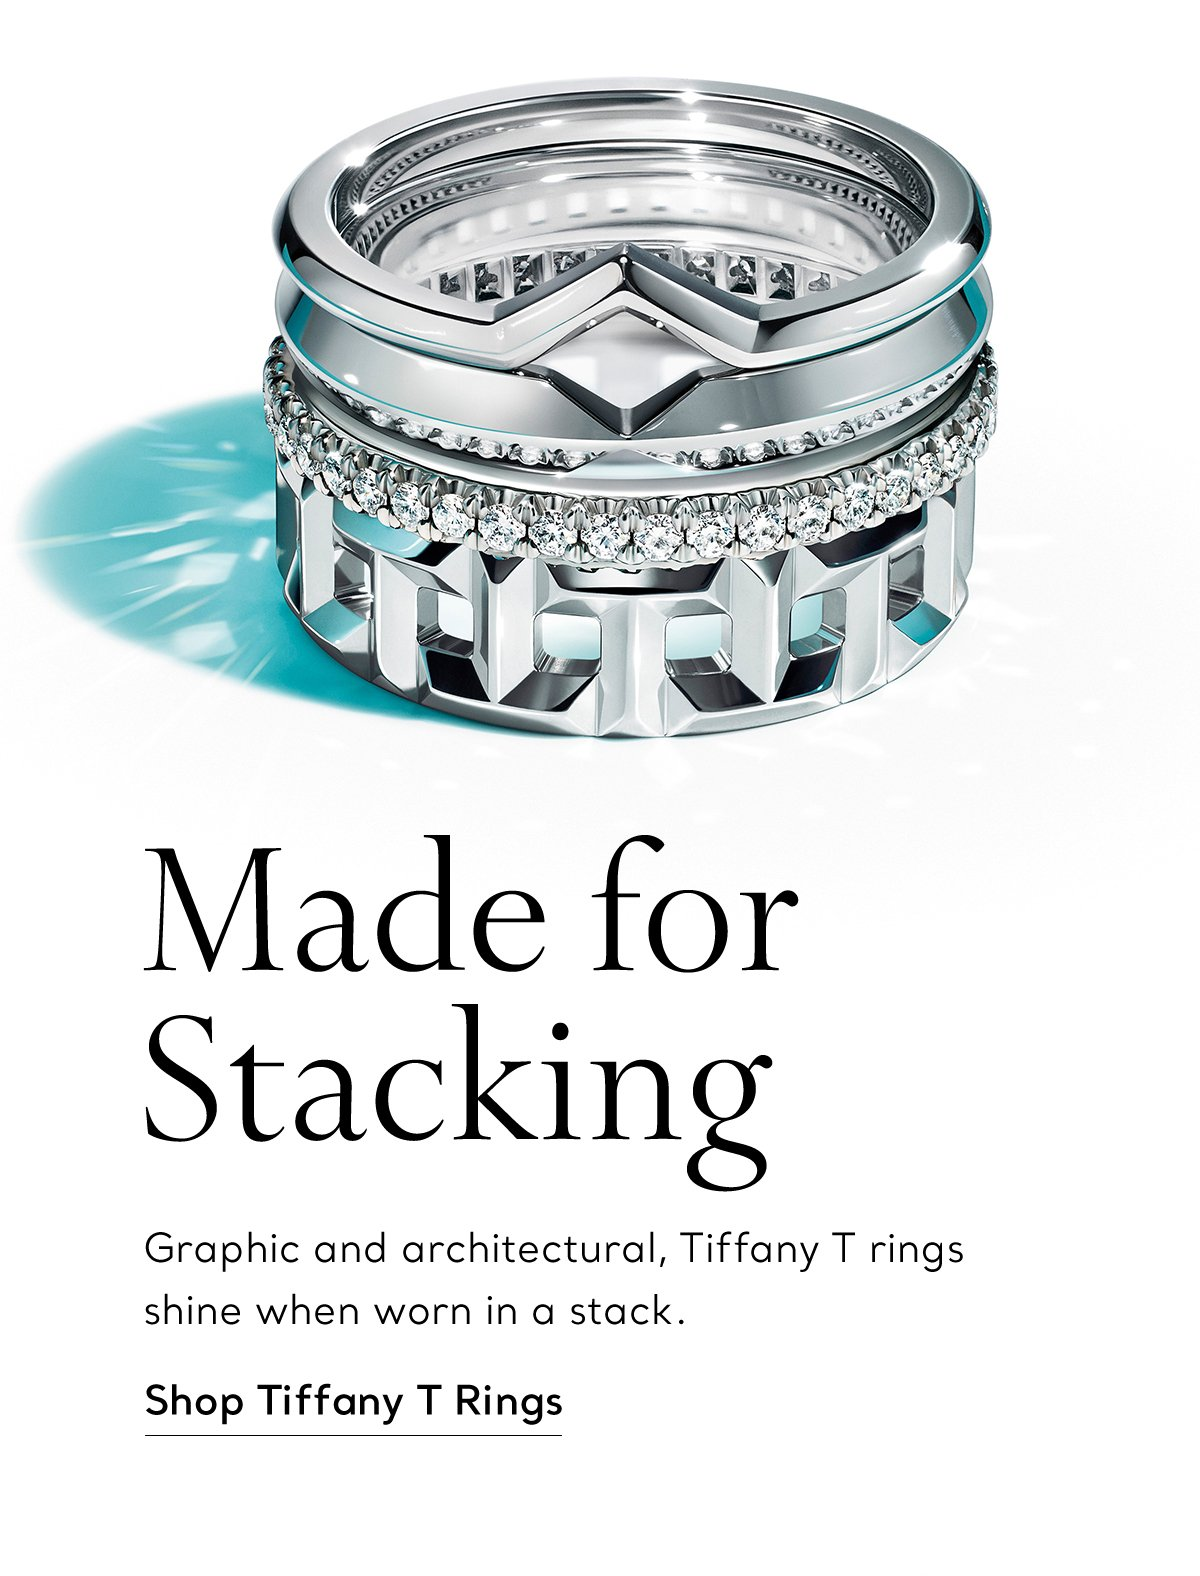 Shop Tiffany T Rings